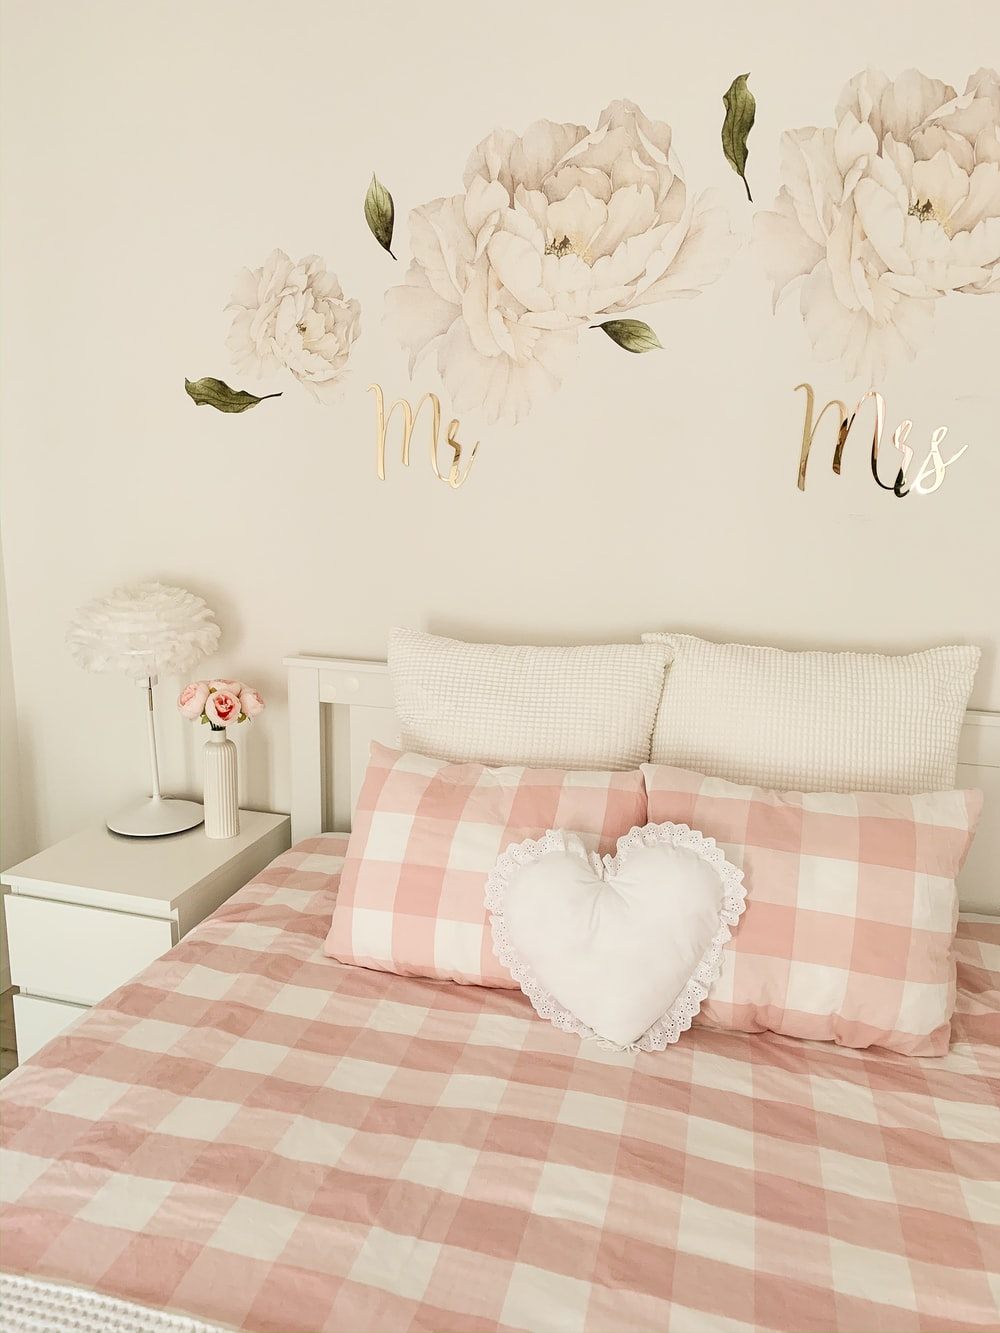 pink and white plaid pillows on bedsheet